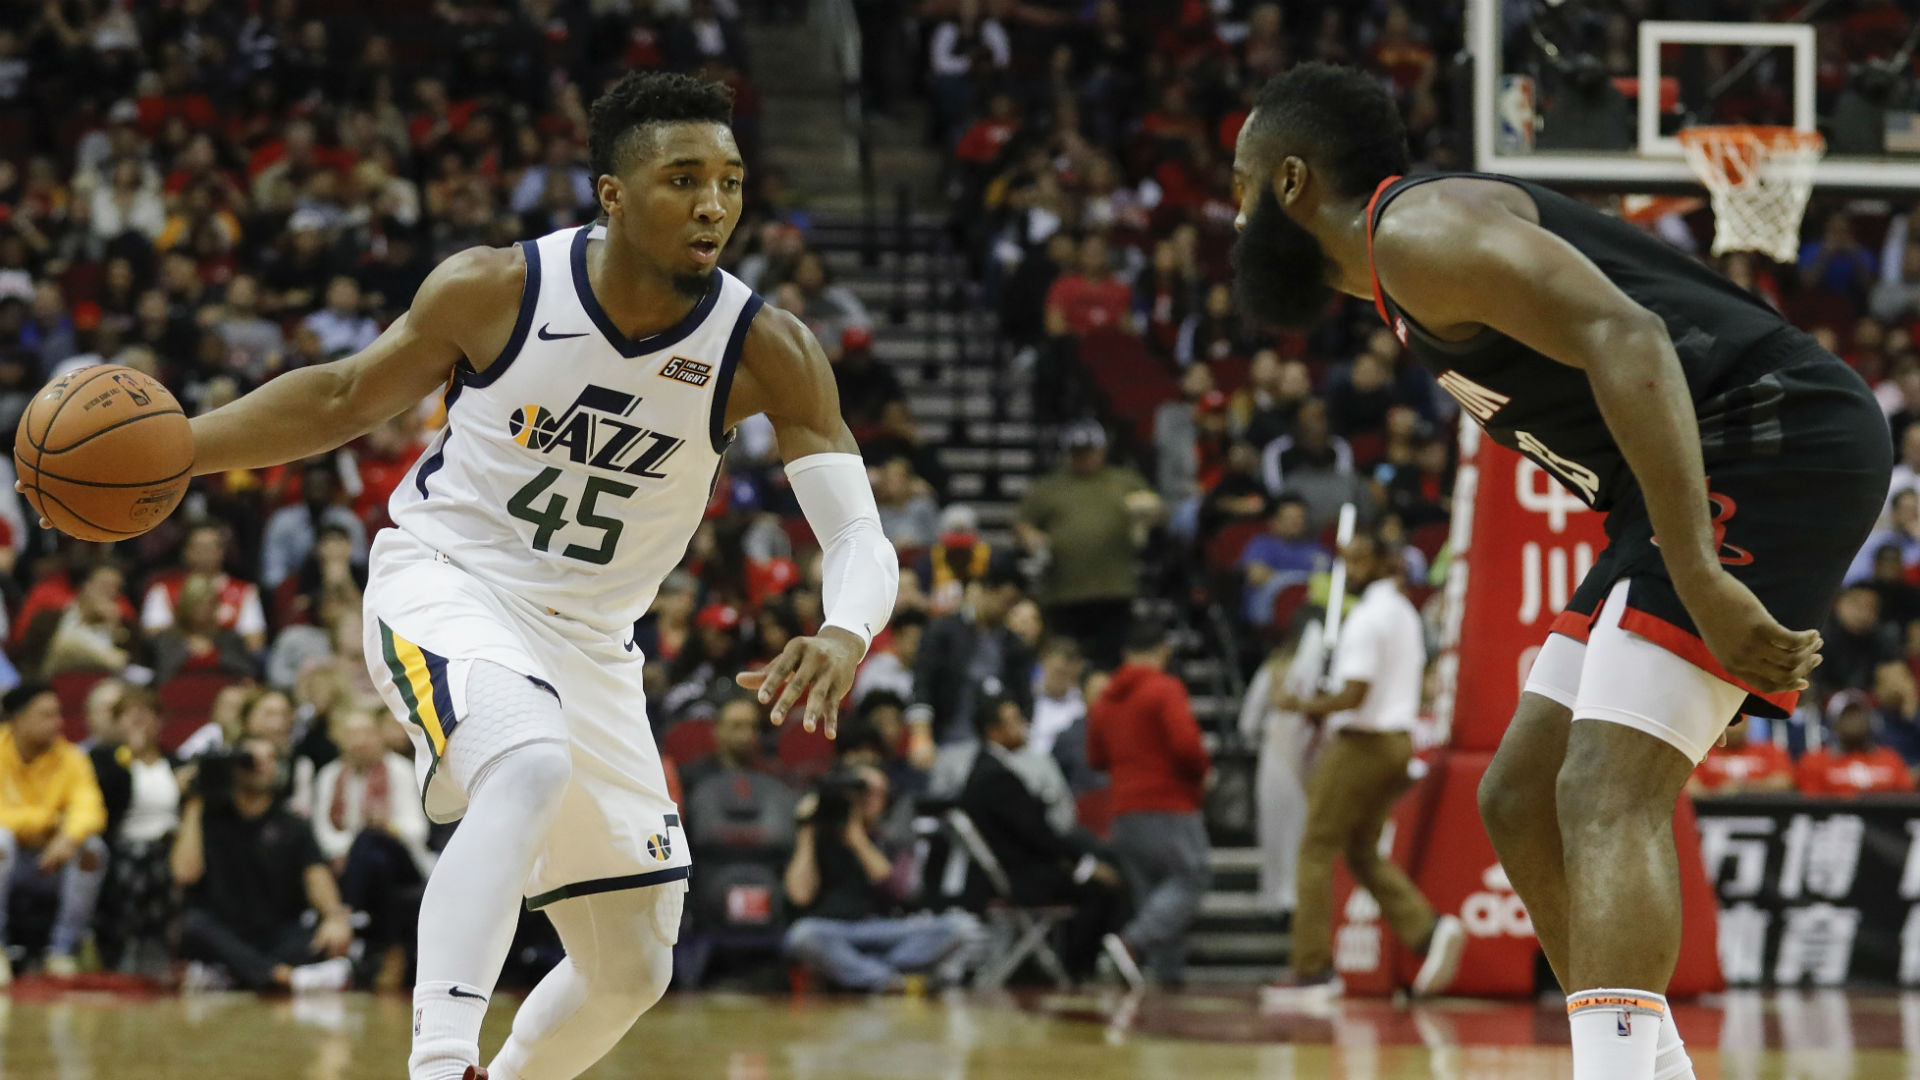 donovan-mitchell-james-harden-getty-121718-ftr.jpg